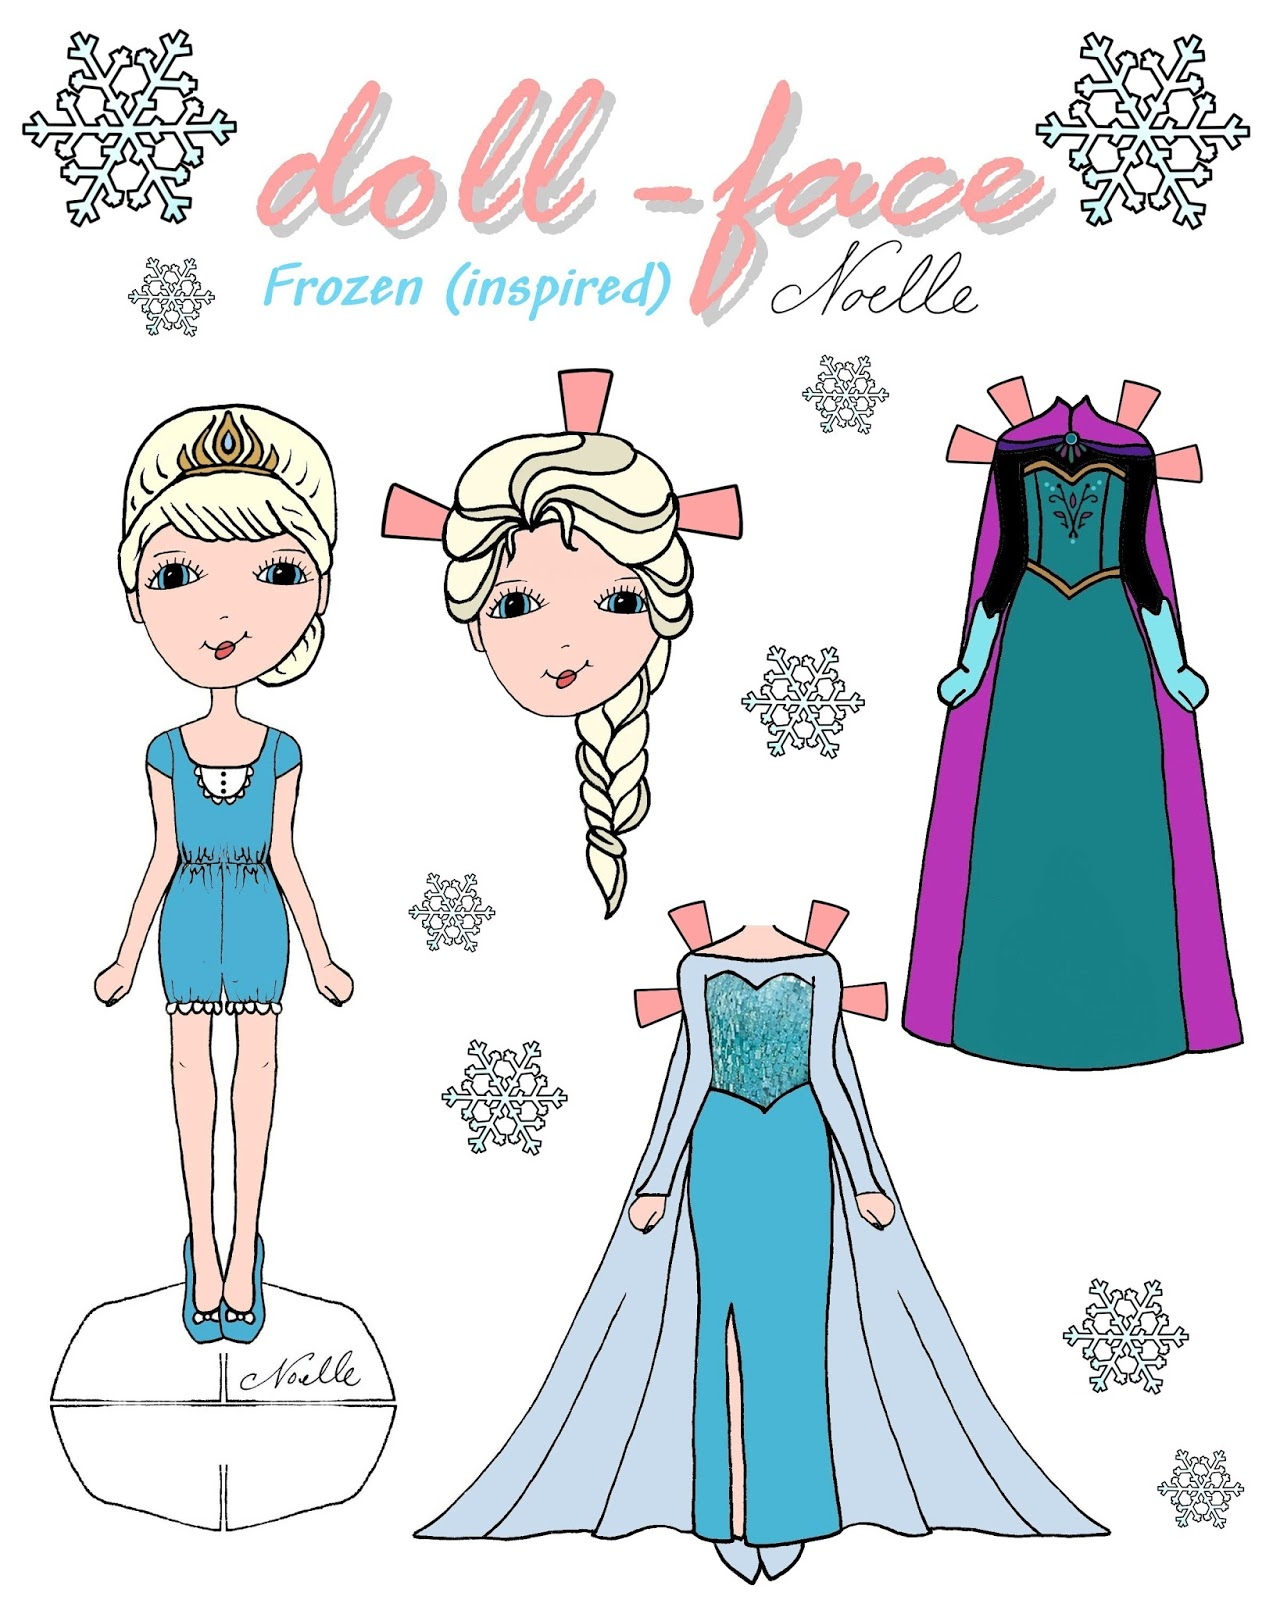 14 Kids N Fun Coloring Page Frozen Anna and Elsa Frozen Of Elsa ... | 1600x1280